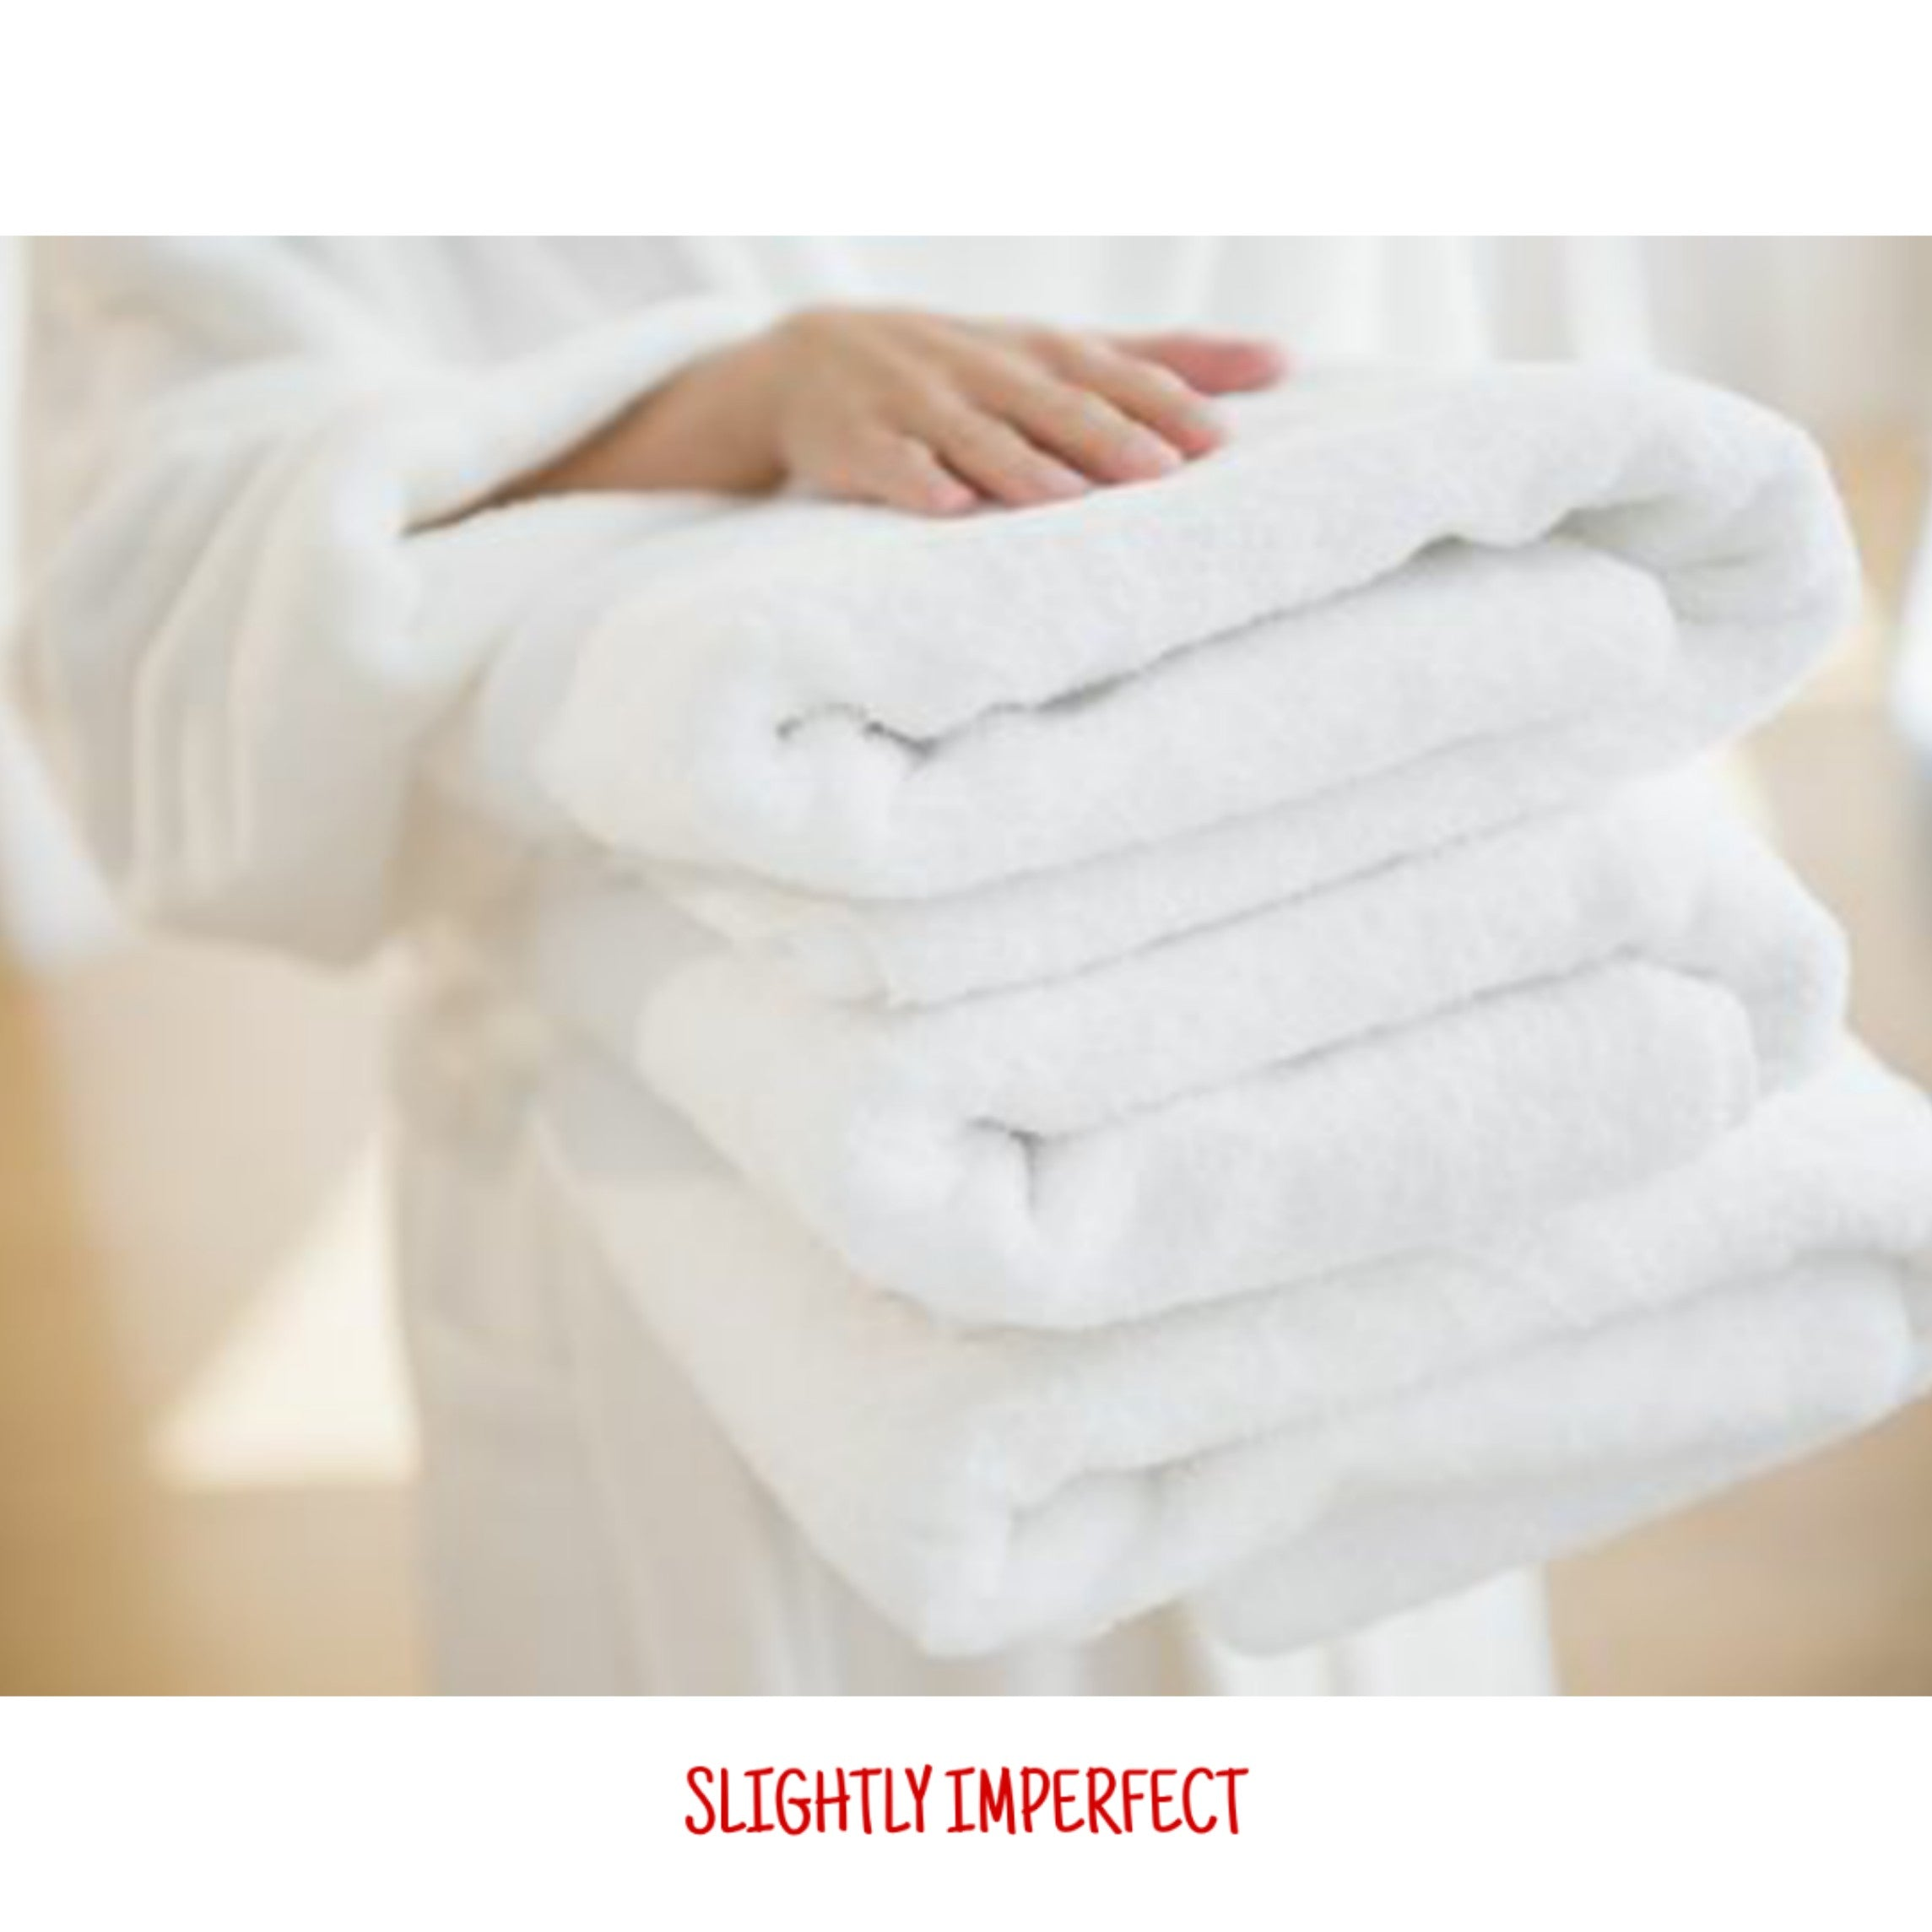 Bundle of 20 Snag Free Imperfect Bath Towels